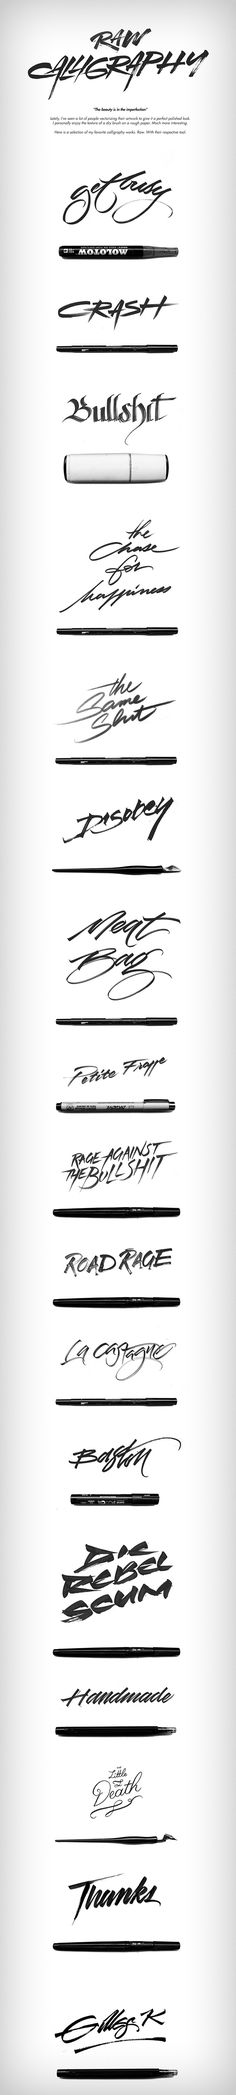 A selection of my favorite calligraphy works. Raw. With their respective tool.